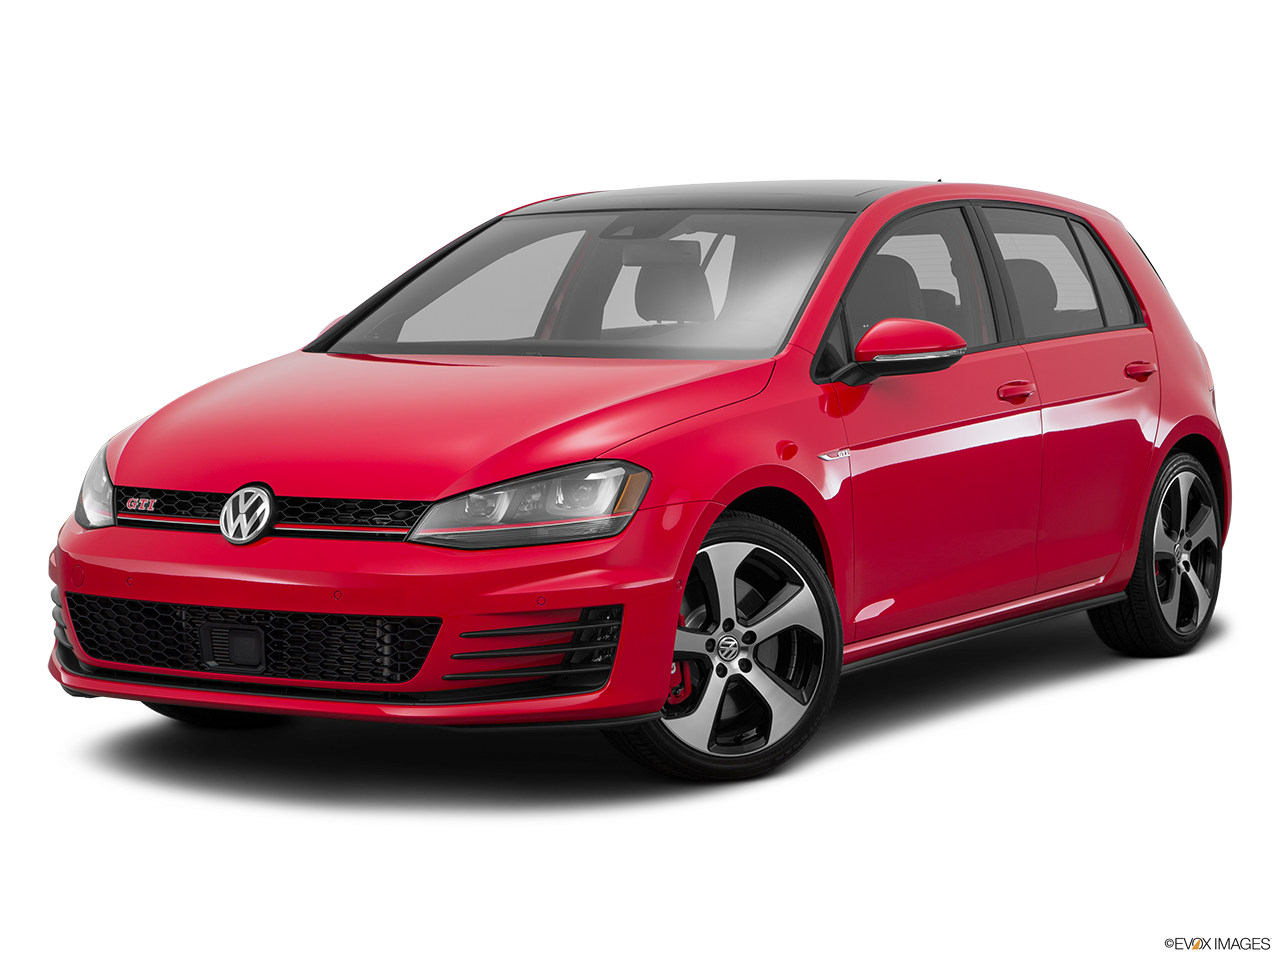 2016 Volkswagen Golf GTI serving Nashville